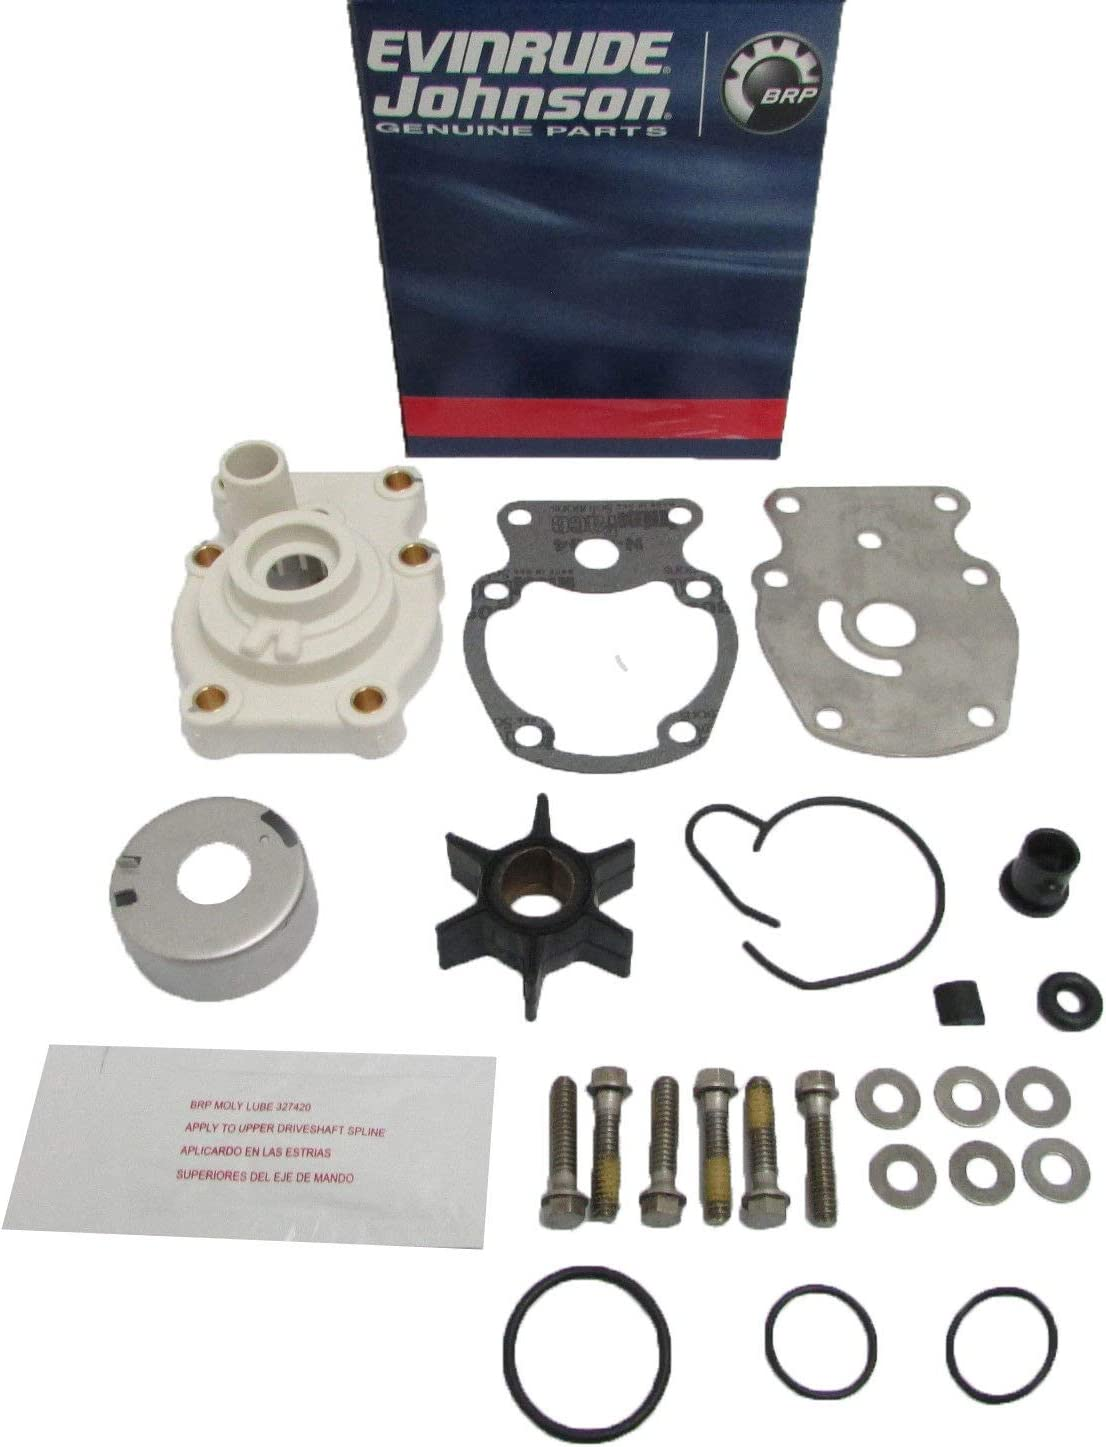 GLM 12070 Water Pump Impeller Service Kit 20-35 HP Johnson Evinrude 393630